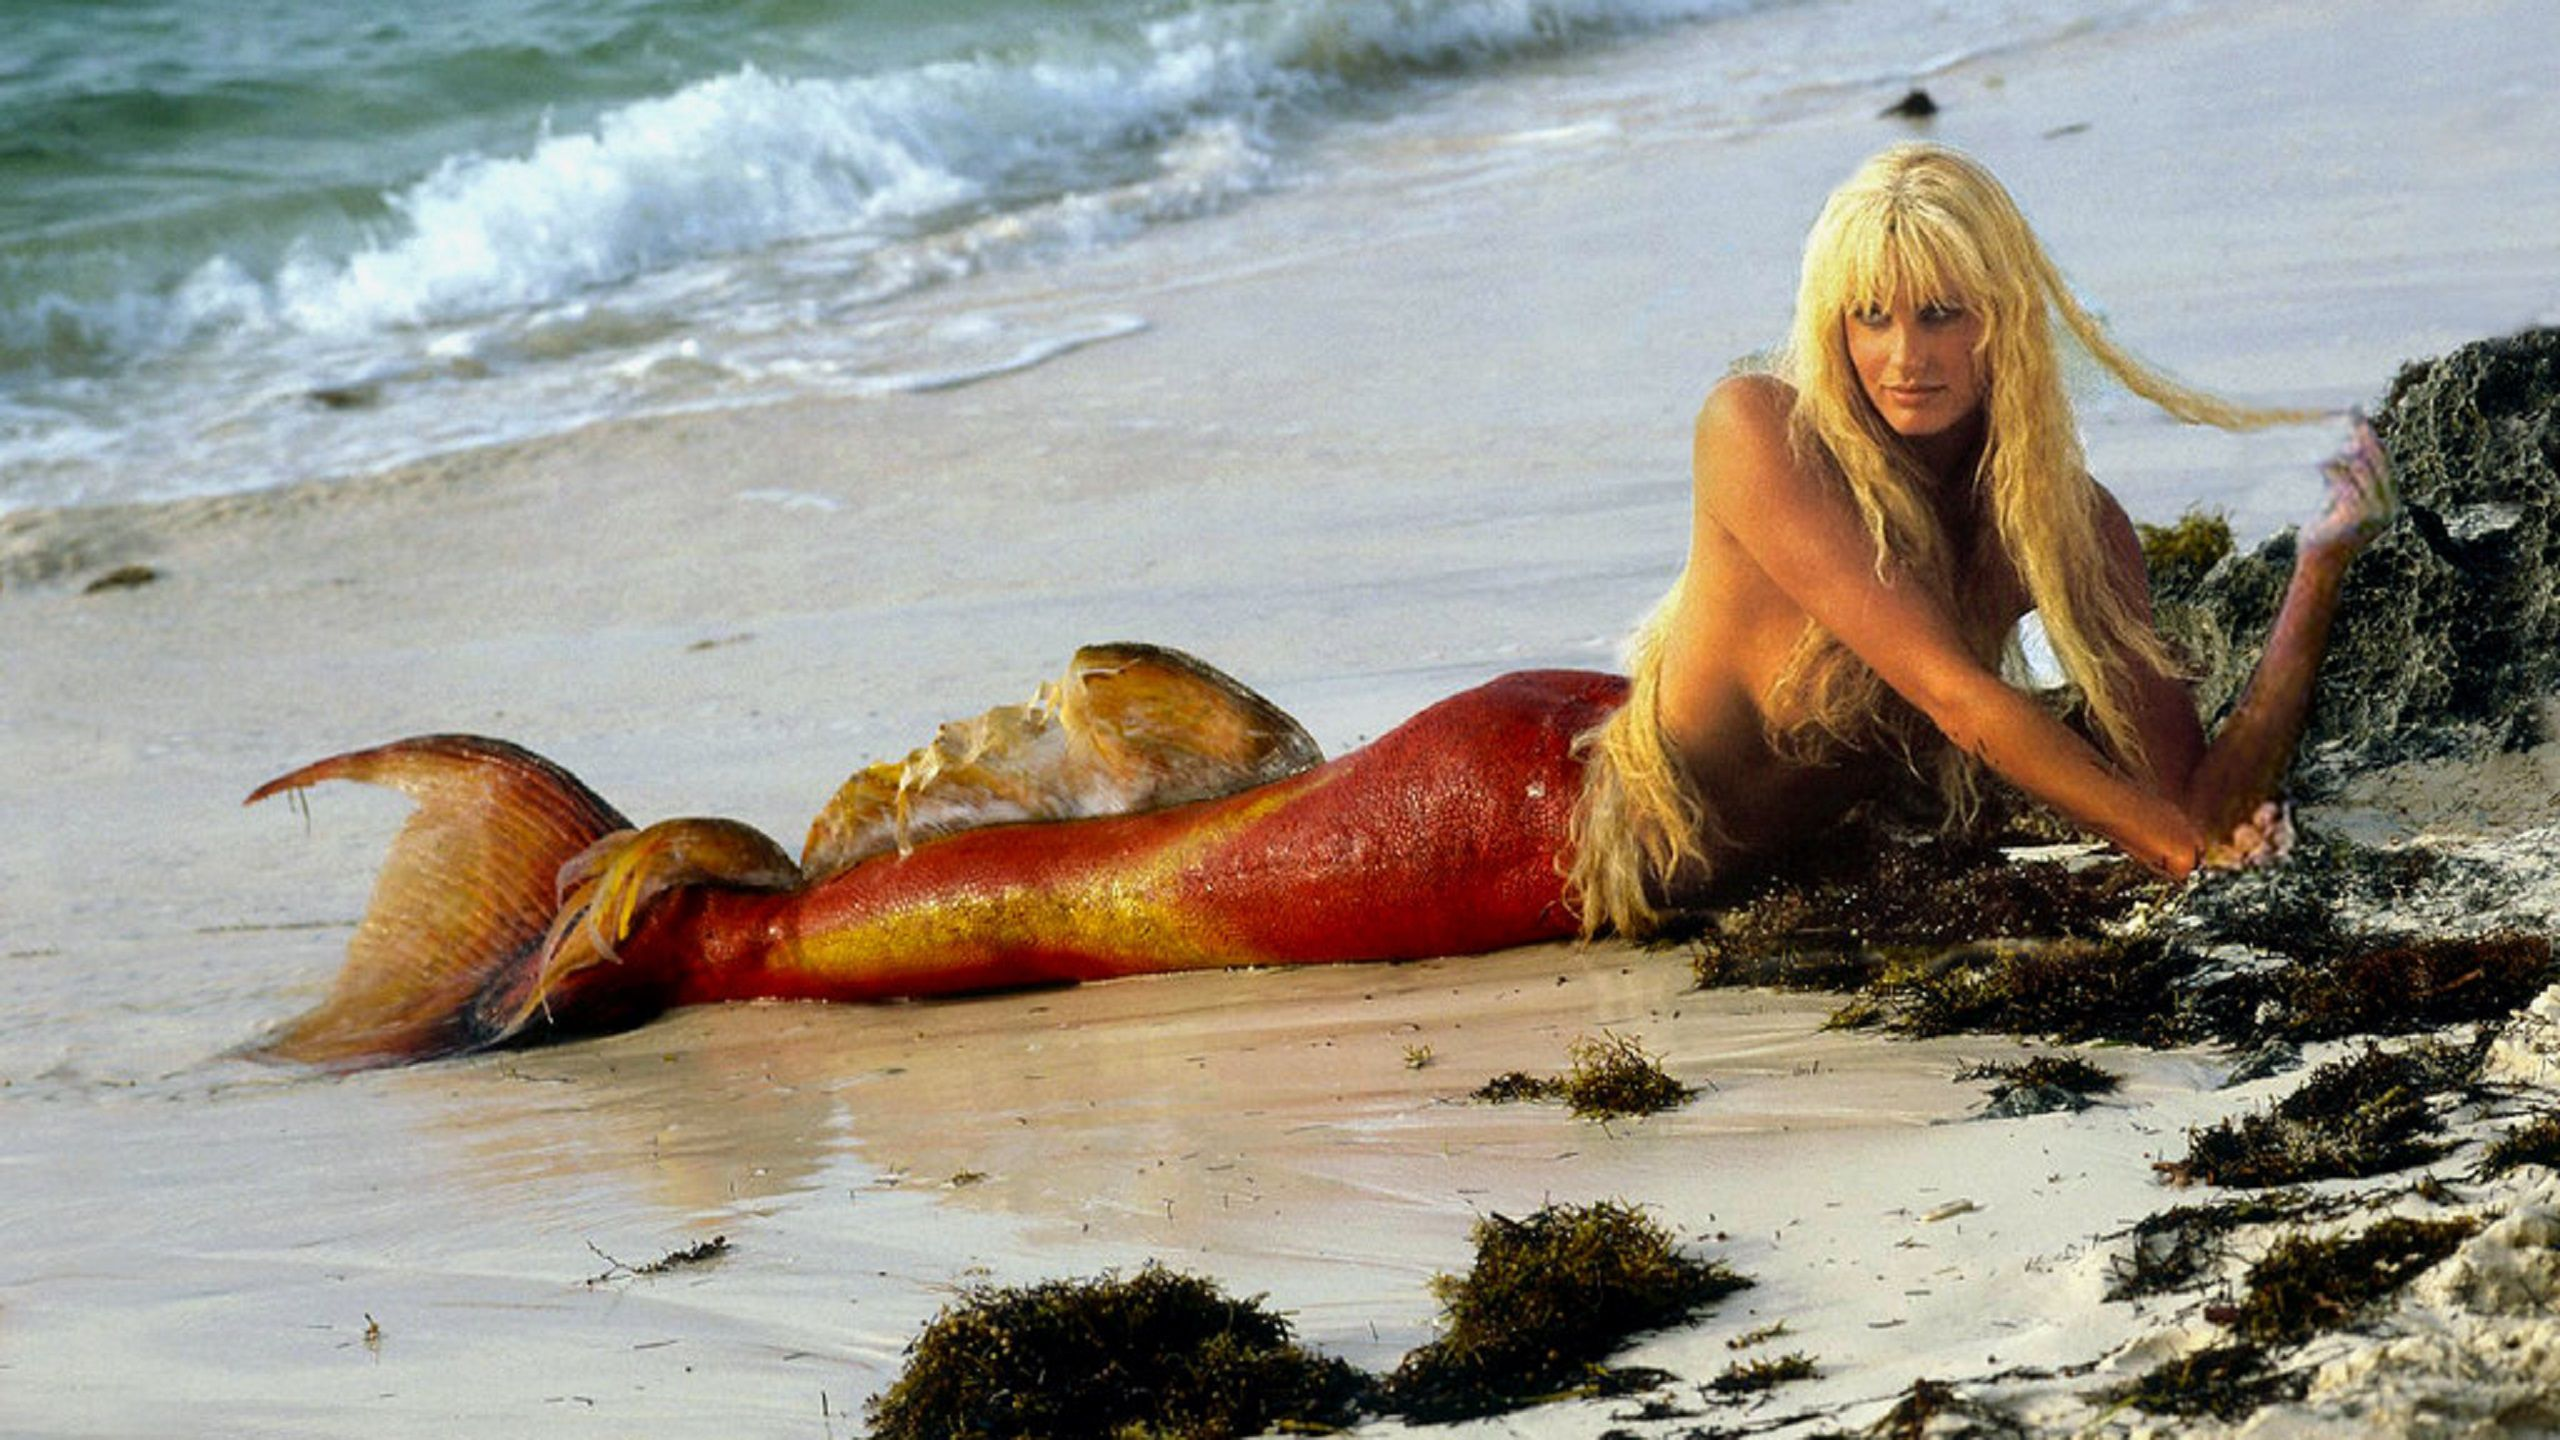 Splash - una Sirena a Manhattan (1984) Syren on beach - Daryl Hannah